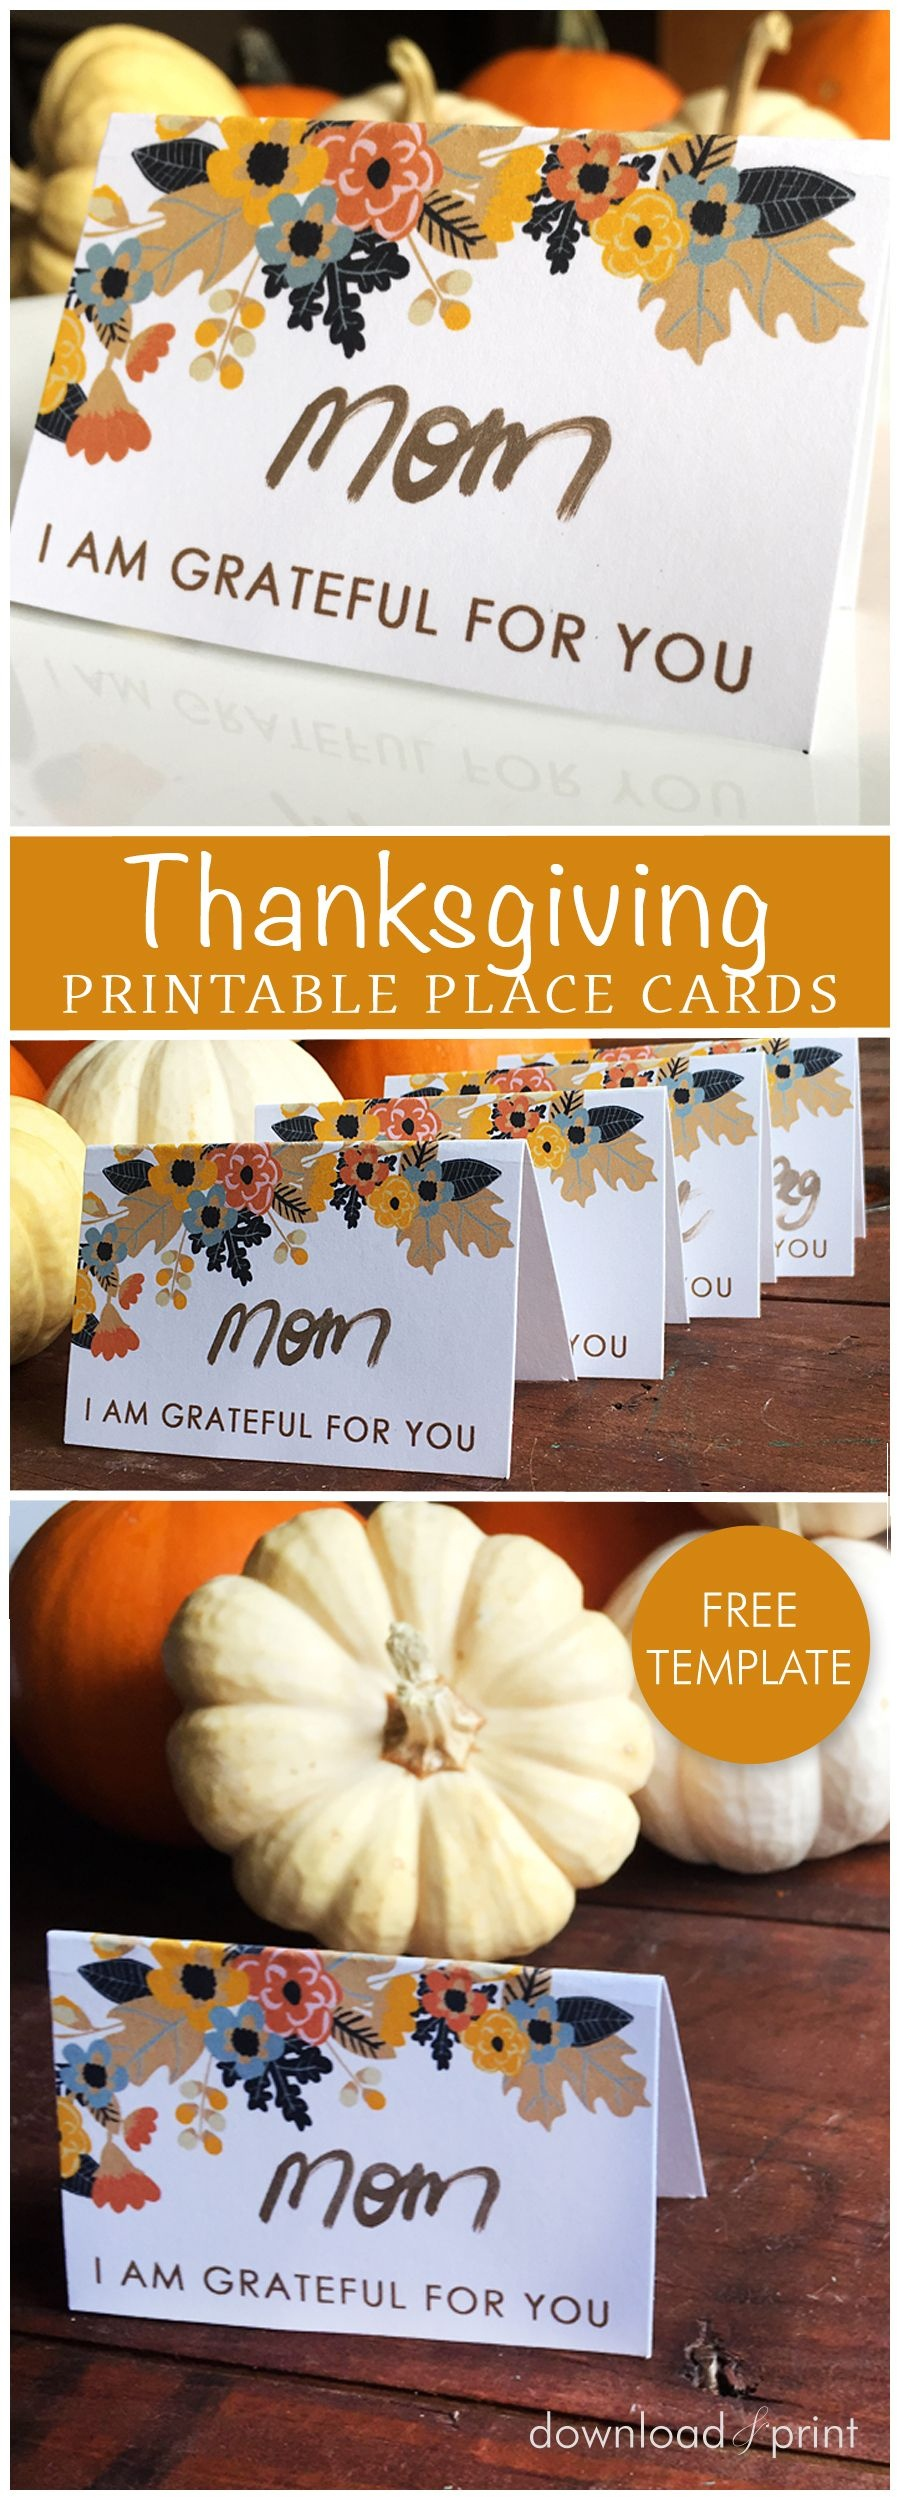 Free Printable Place Card Template, Perfect For Your Thanksgiving - Free Printable Halloween Place Cards